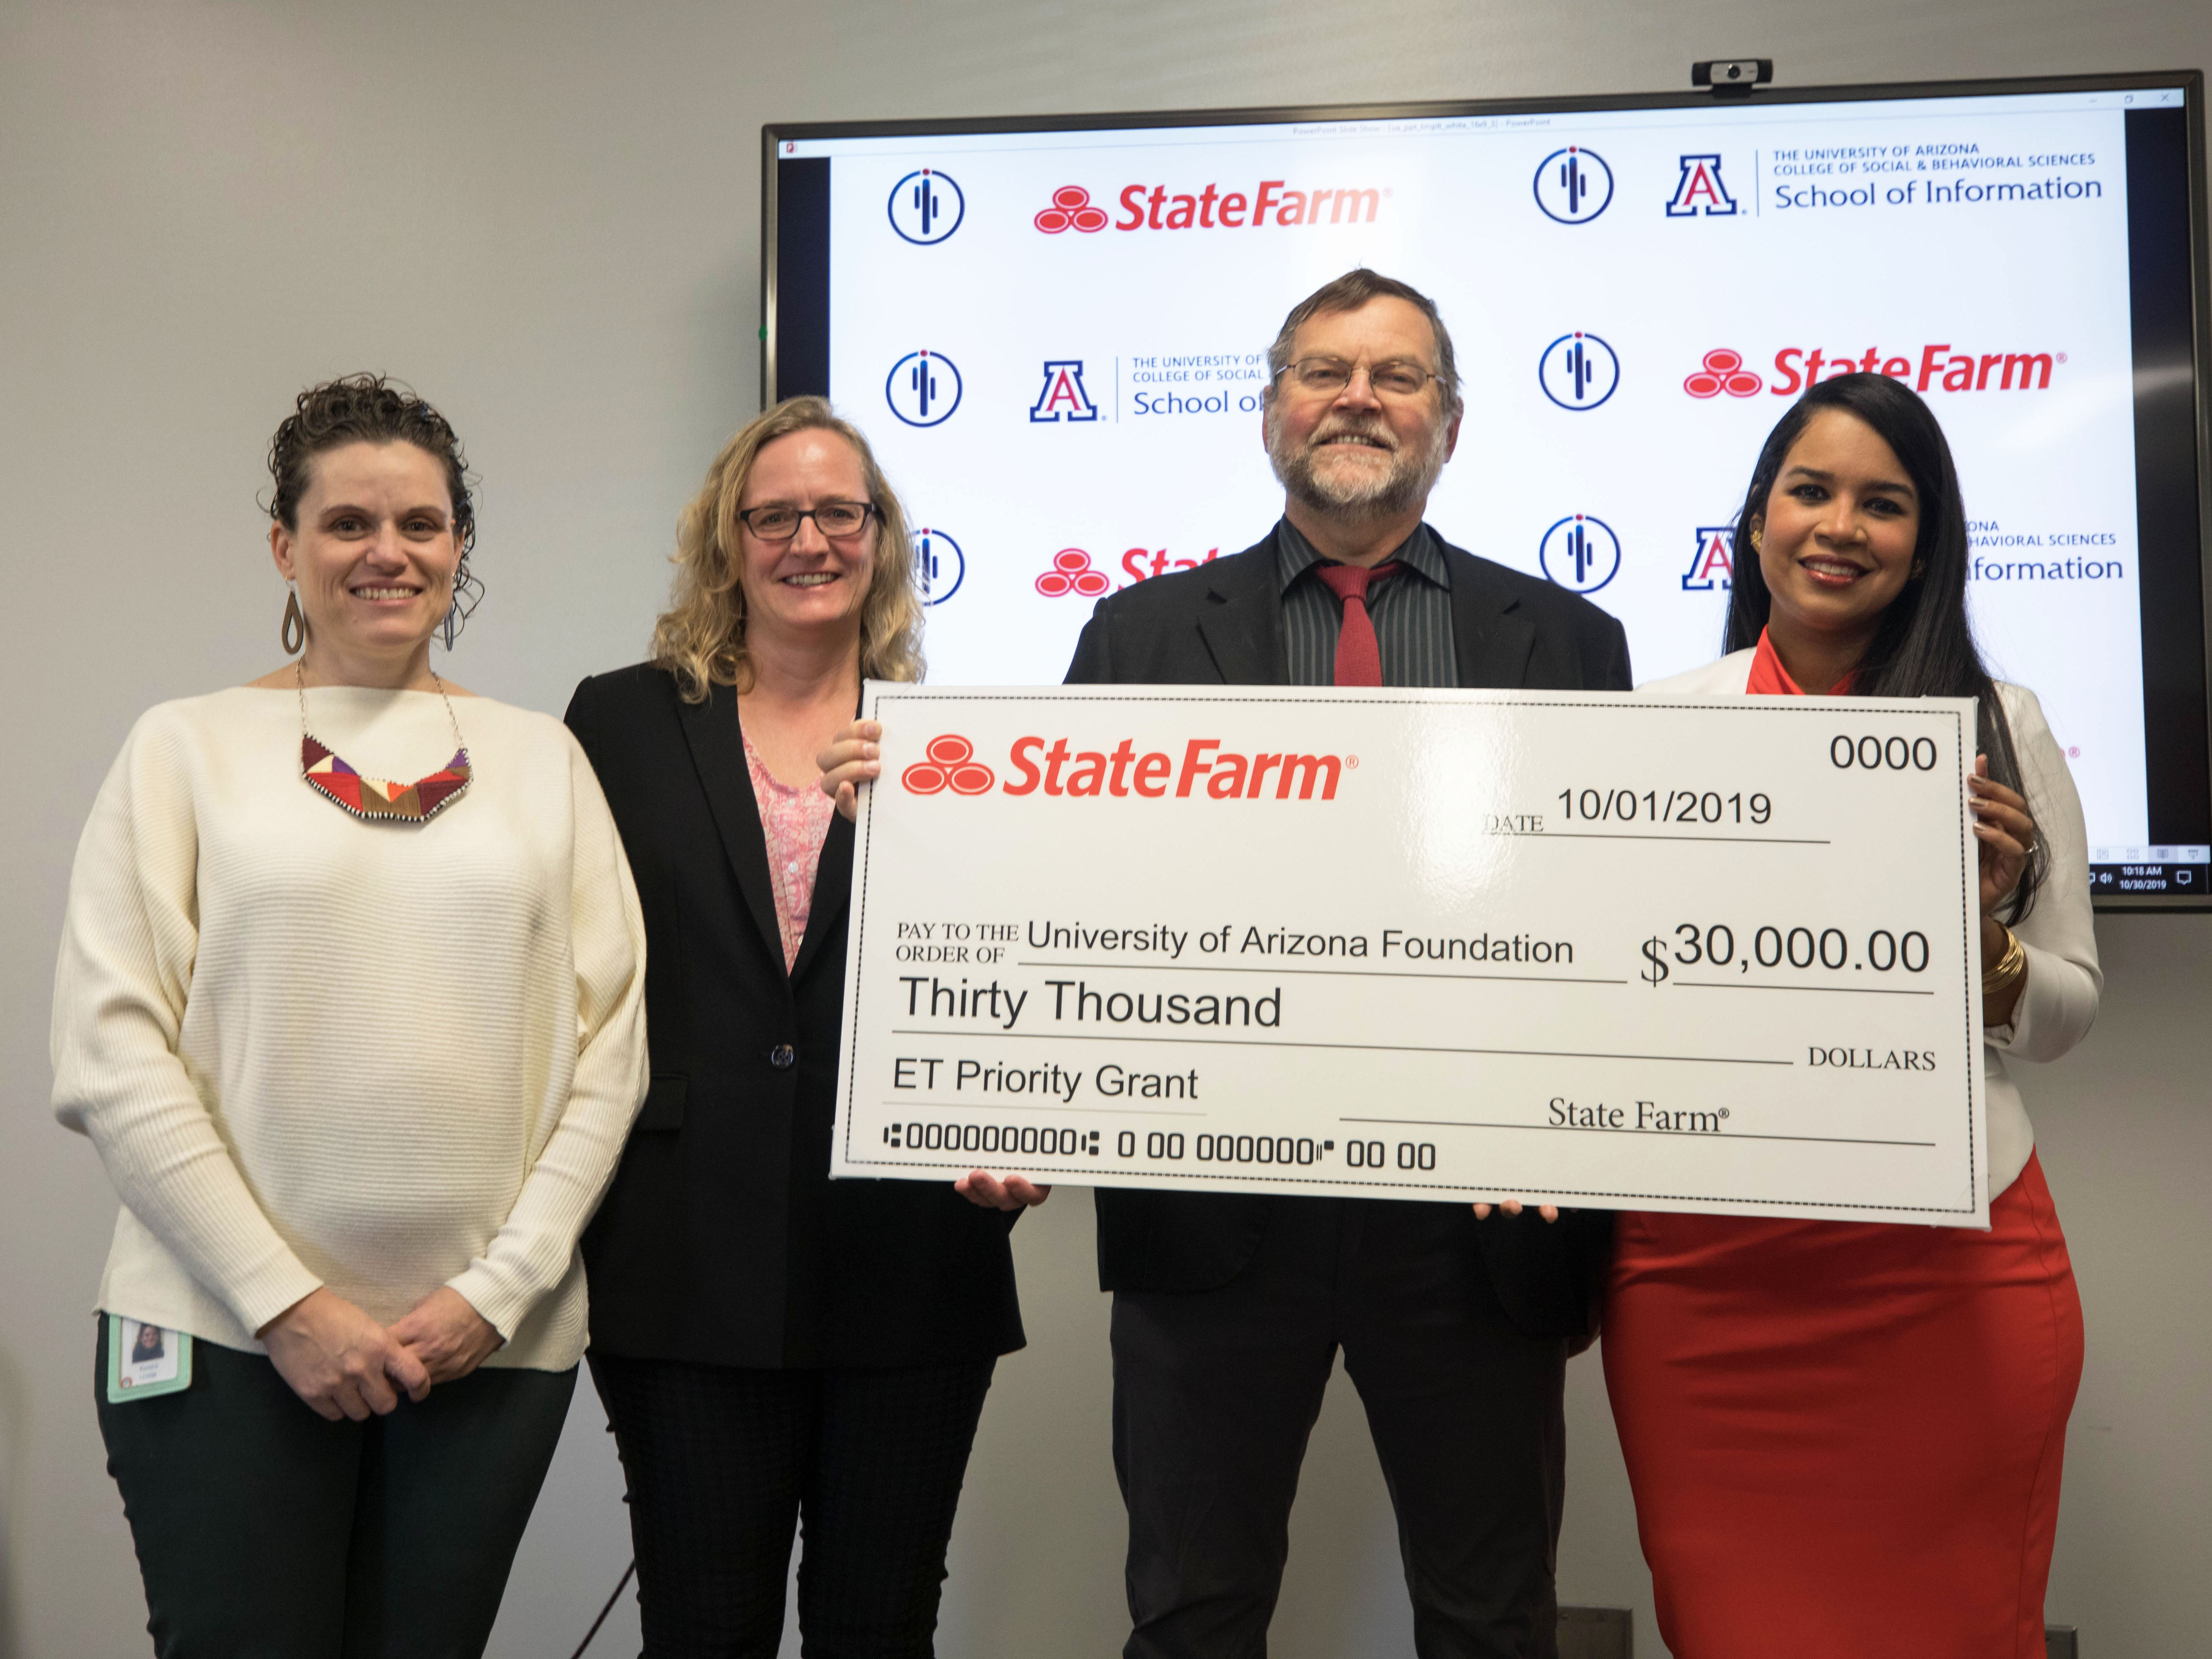 ): Kendra Davey, Literacy Initiatives Program Manager with the Pima County Public Library; Catherine Brooks, director of the University of Arizona School of Information; Bryan Heidorn, professor in the iSchool; & Annie Frits, State Farm agen